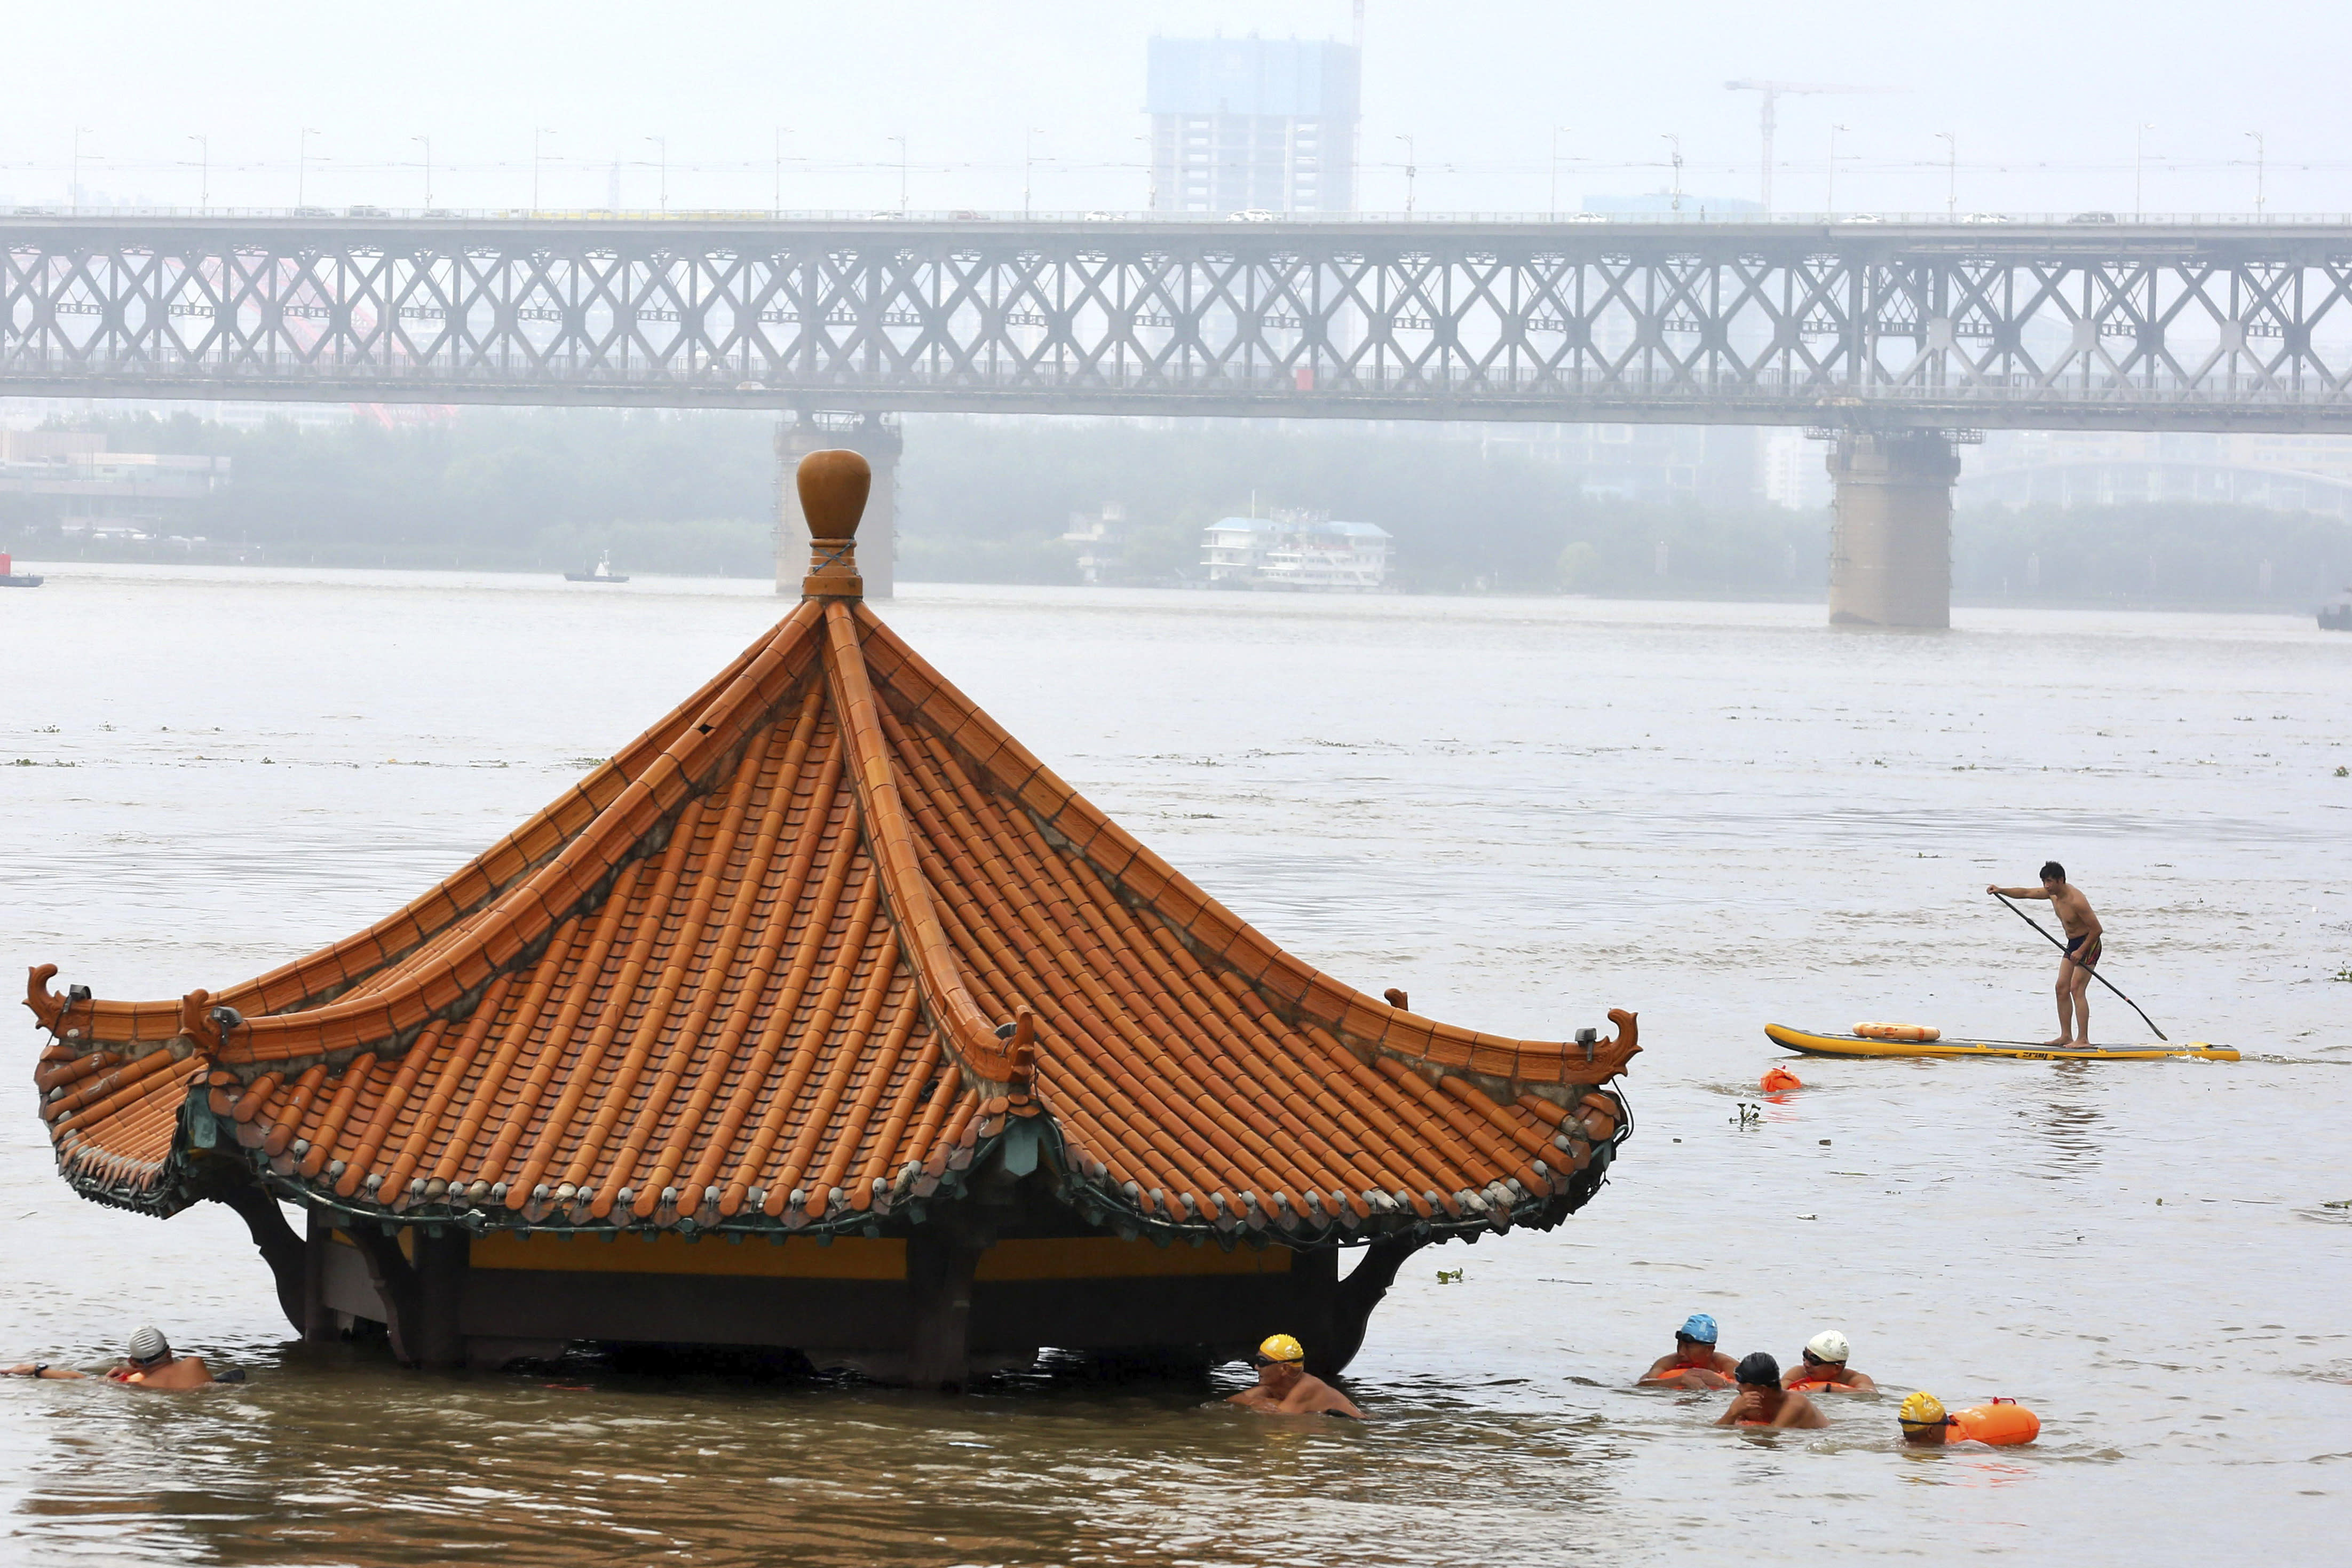 Residents swim past a riverside pavilion submerged by the flooded Yangtze River in Wuhan in central China's Hubei province Wednesday, July 8, 2020. Rescuers in central China were searching Wednesday for people left missing in a landslide triggered amid widespread flooding across much of the country. (Chinatopix Via AP)